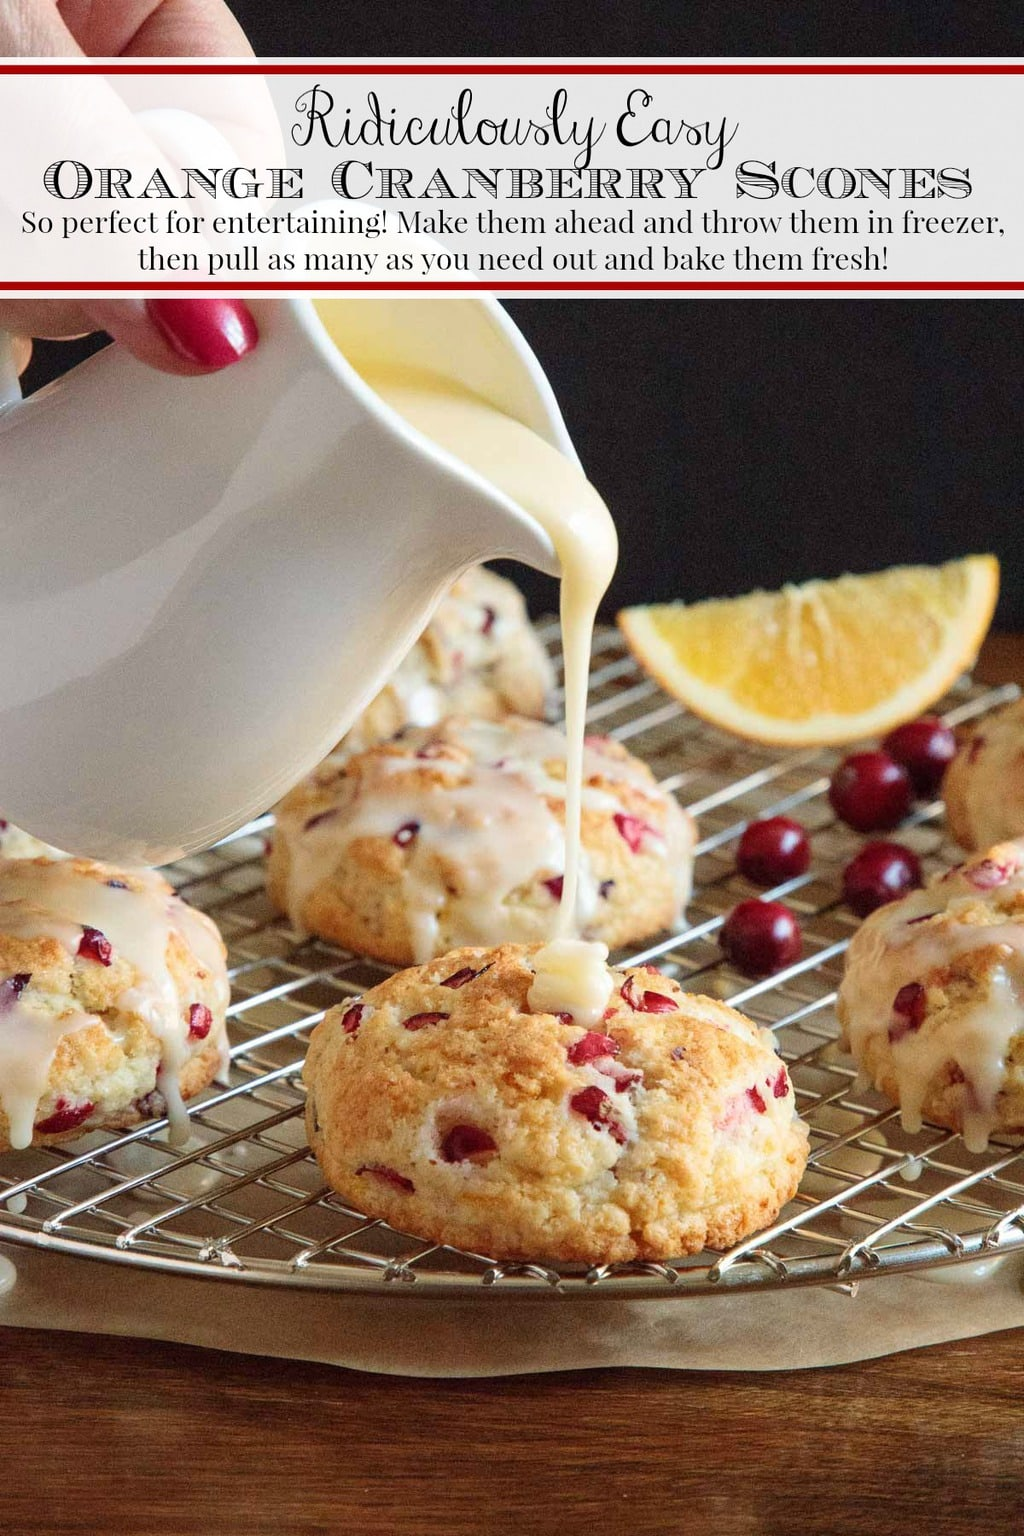 These Easy Orange Cranberry Scones are melt-in-your-mouth delicious and can be made ahead. Pop them in the oven just before serving, for easy entertaining! #easyscones, #cranberryorangescones, #cranberryscones